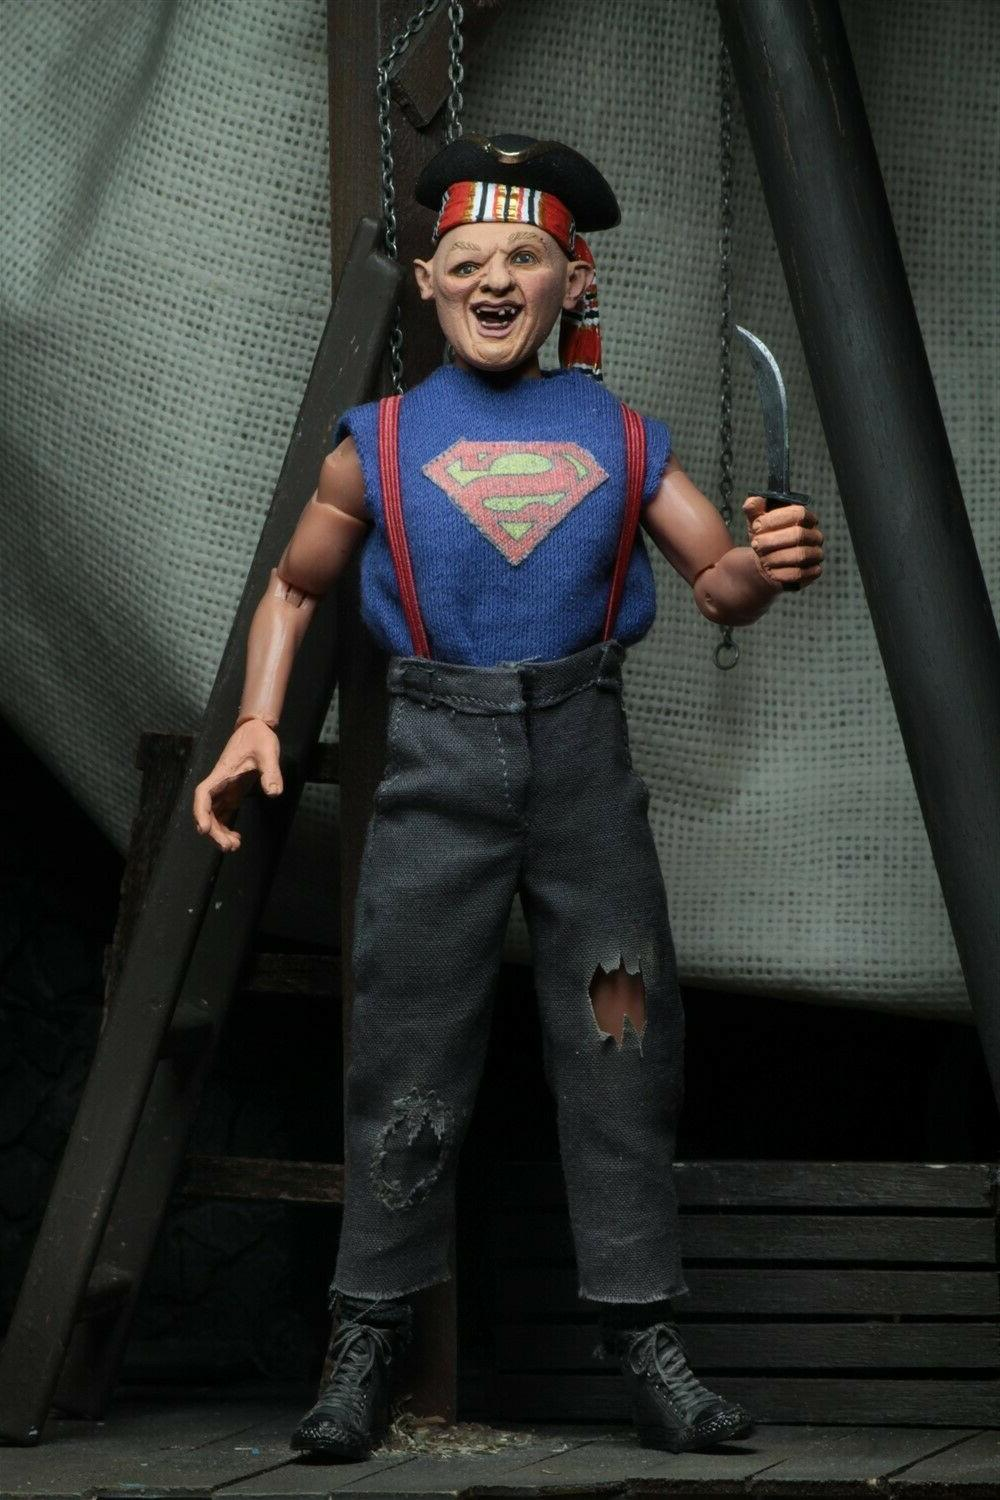 The Clothed Sloth Chunk NECA